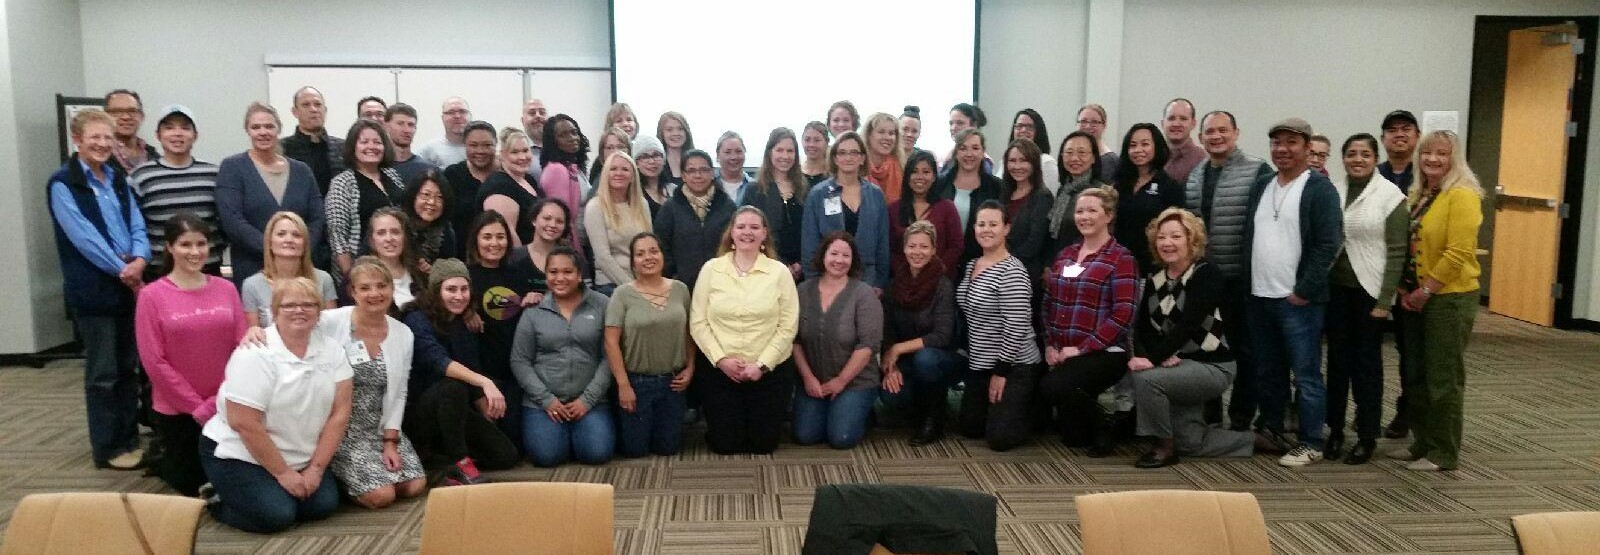 cropped CNOR Prep 2017 Sutter Health Day 02.jpg